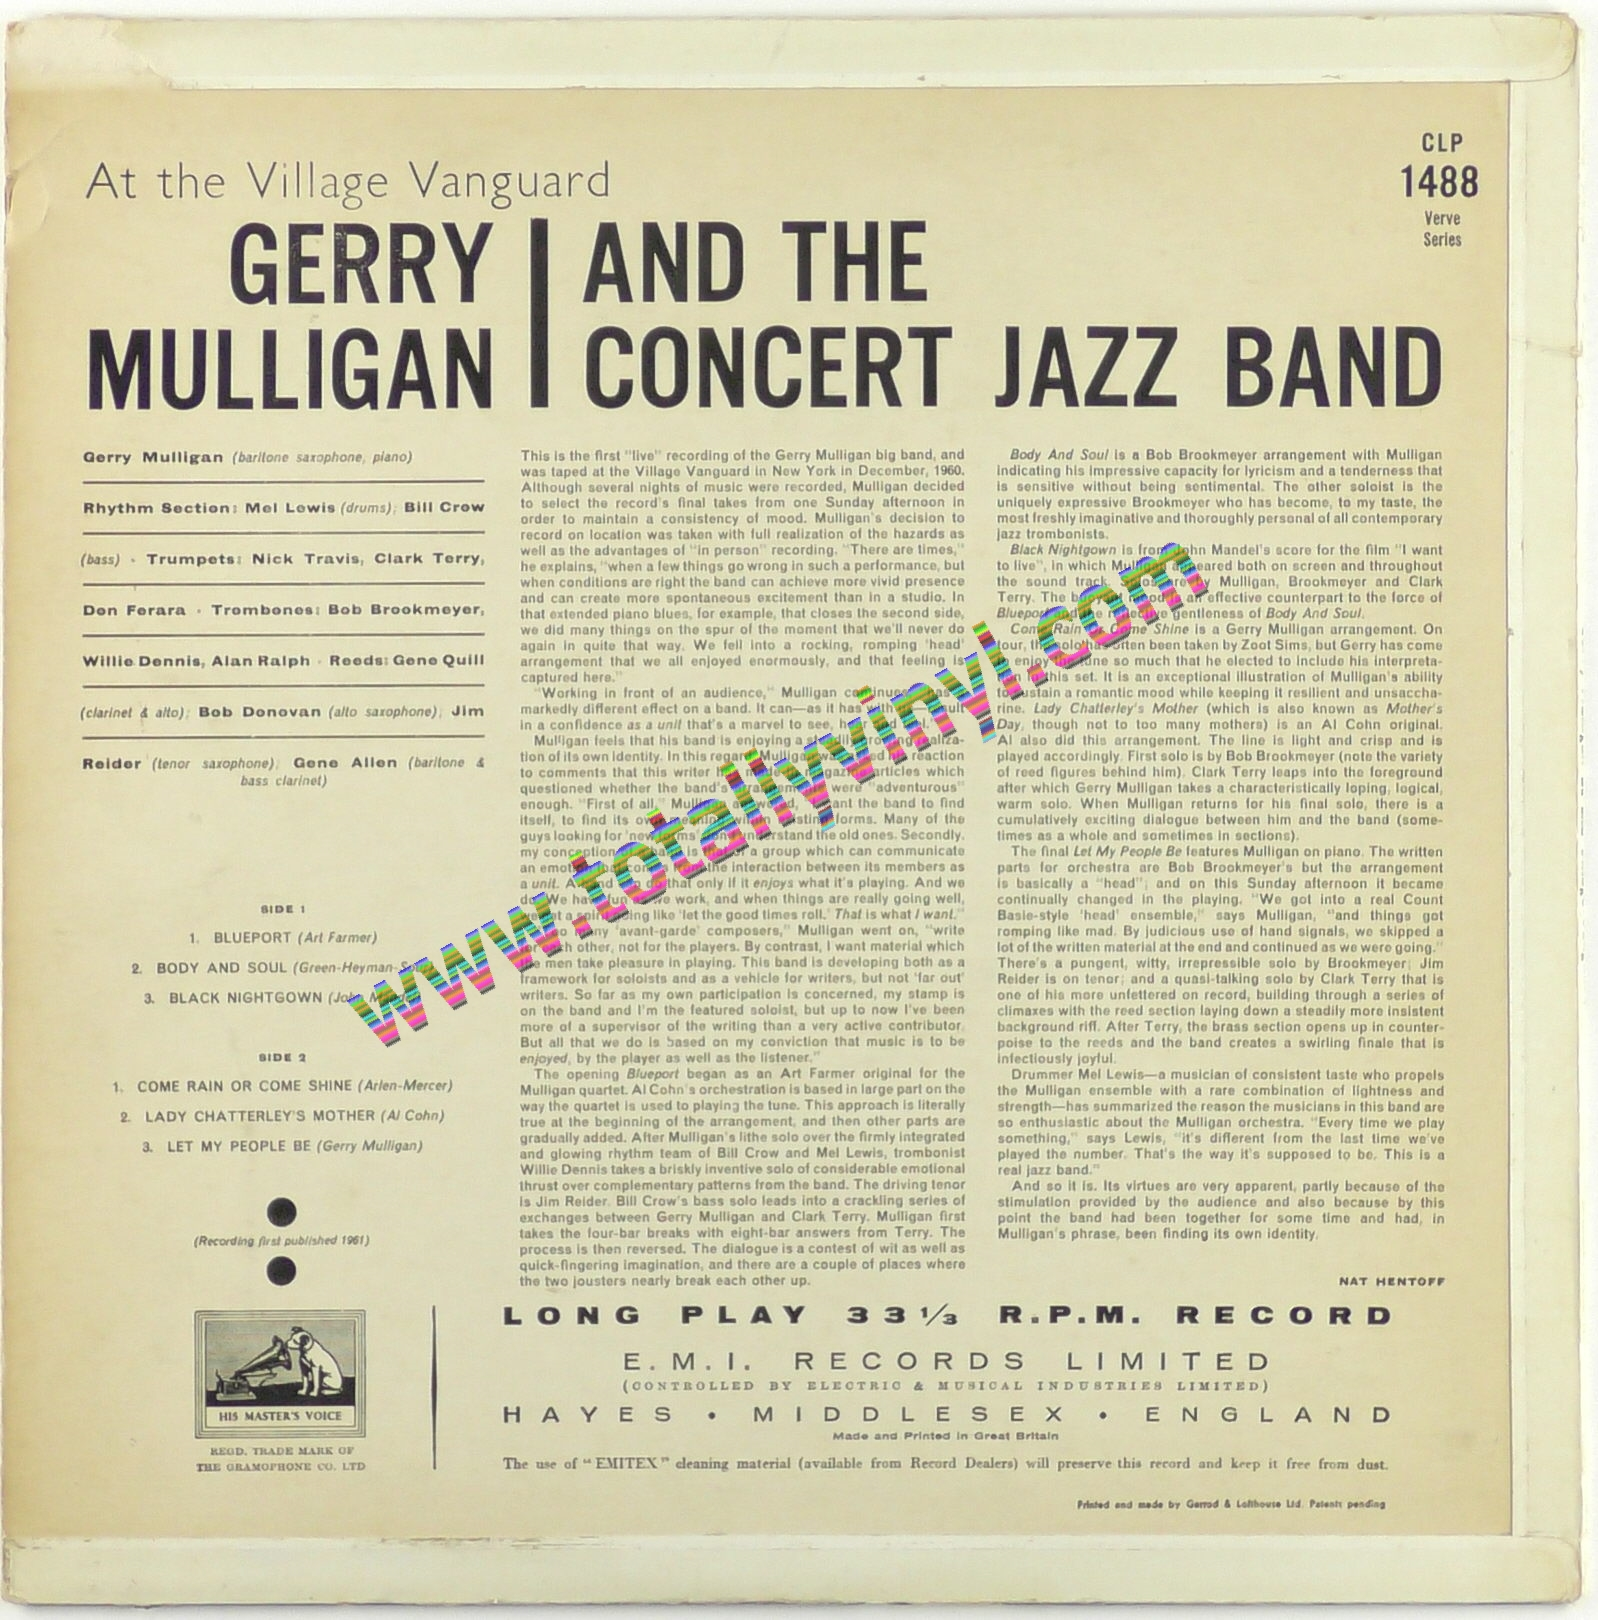 Totally Vinyl Records Mulligan And The Concert Jazz Band Gerry At The Village Vanguard Lp